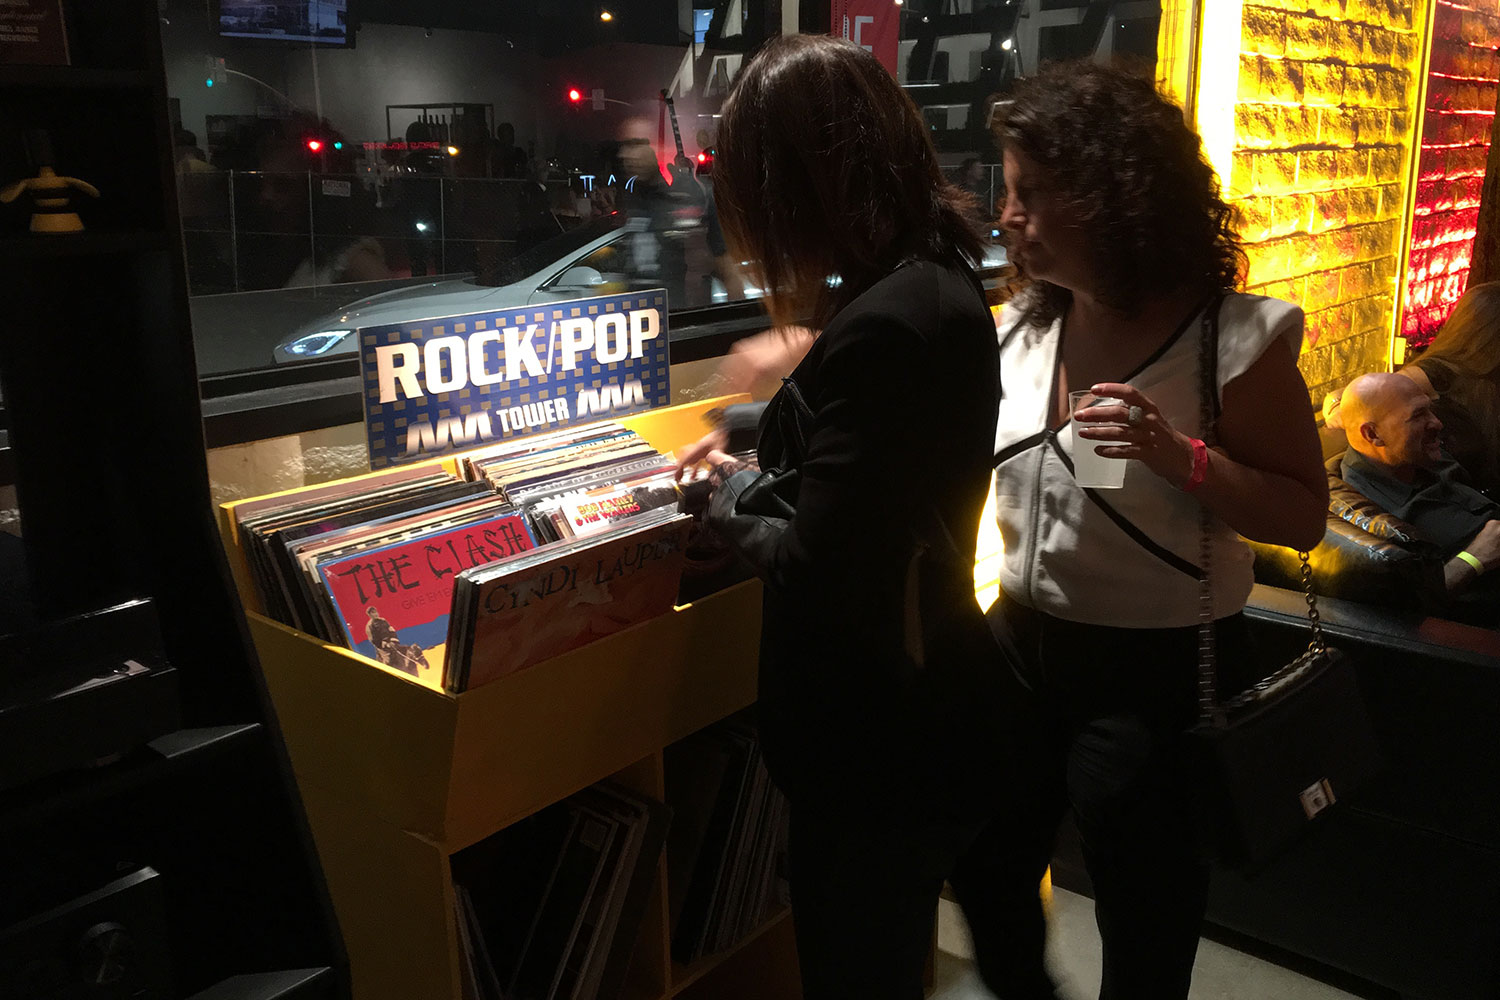 toast-rock-pop-records-album-room-10twelve.jpg